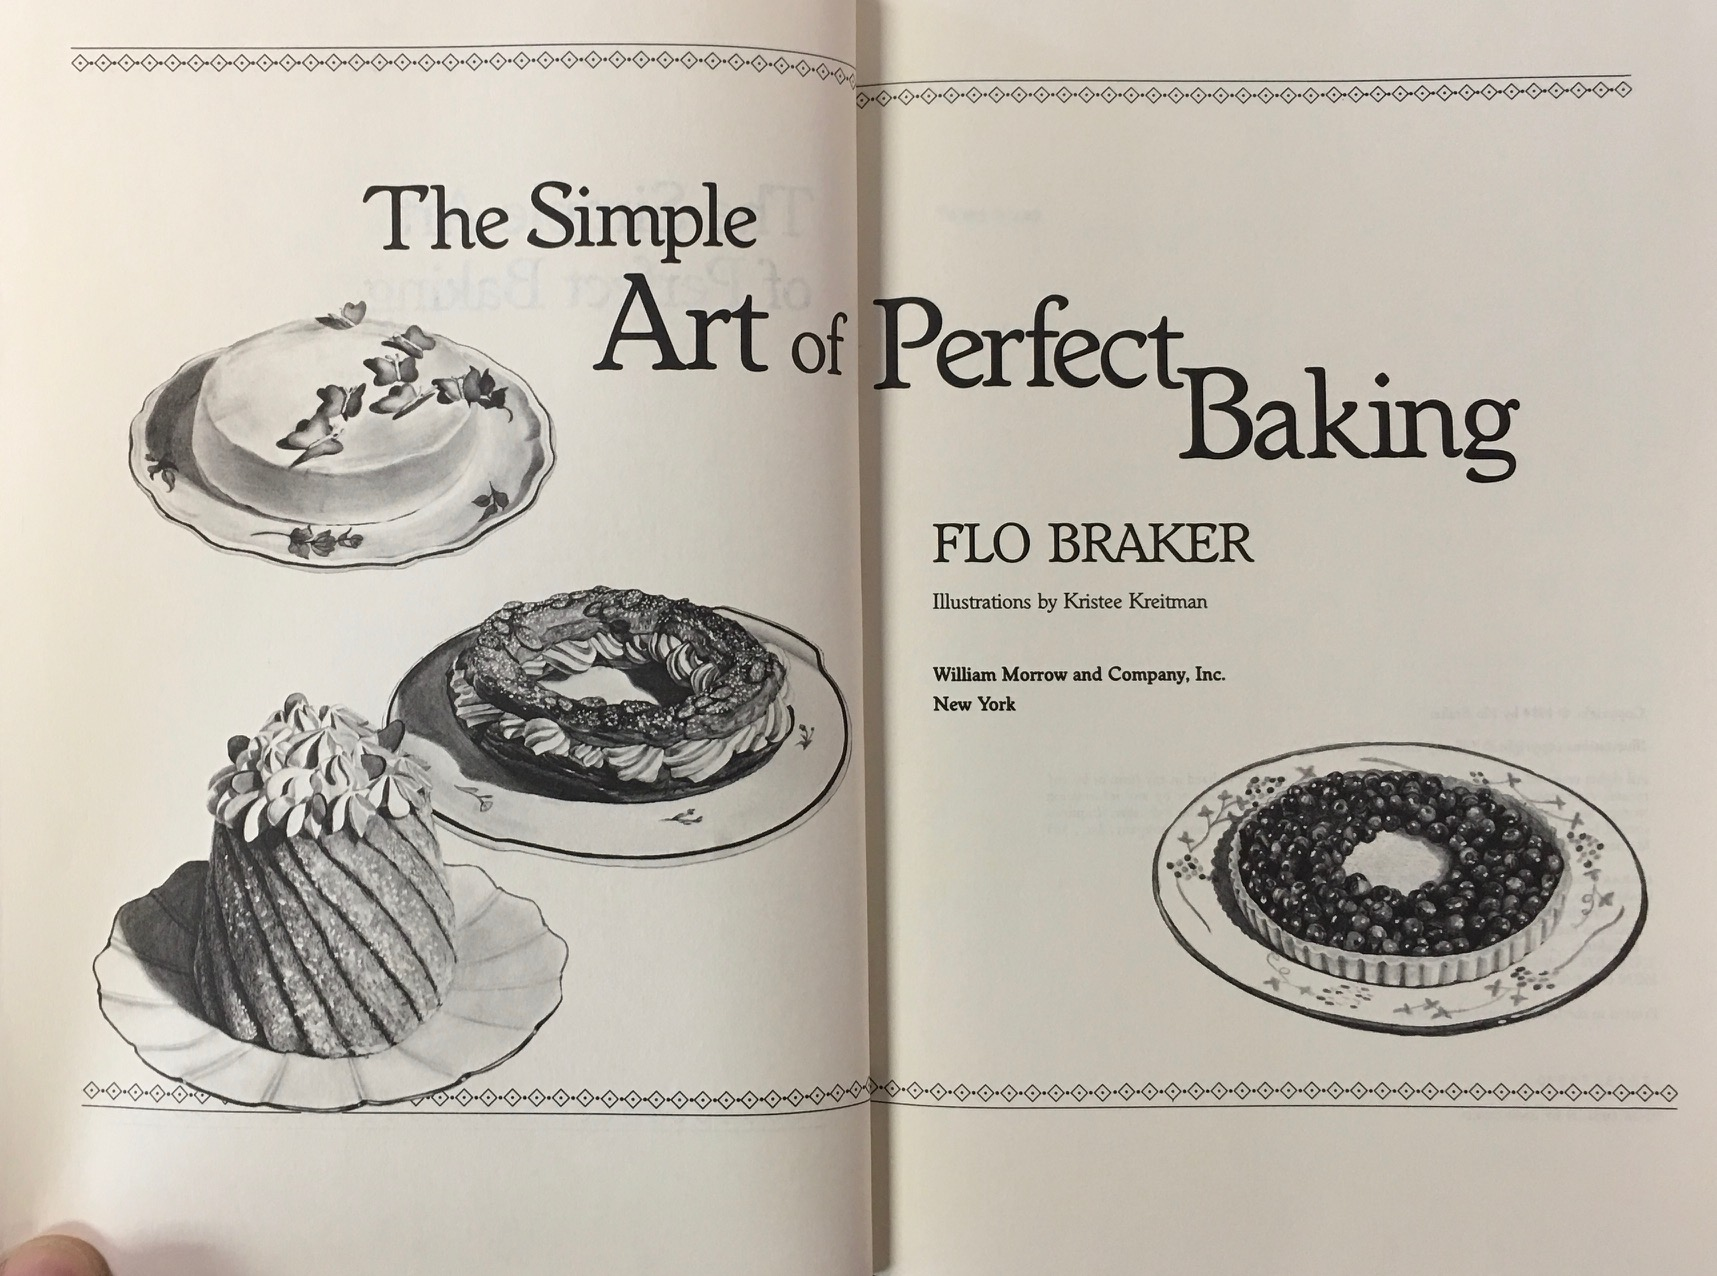 Image for The Simple Art of Perfect Baking by Flo Braker (1984-11-03)